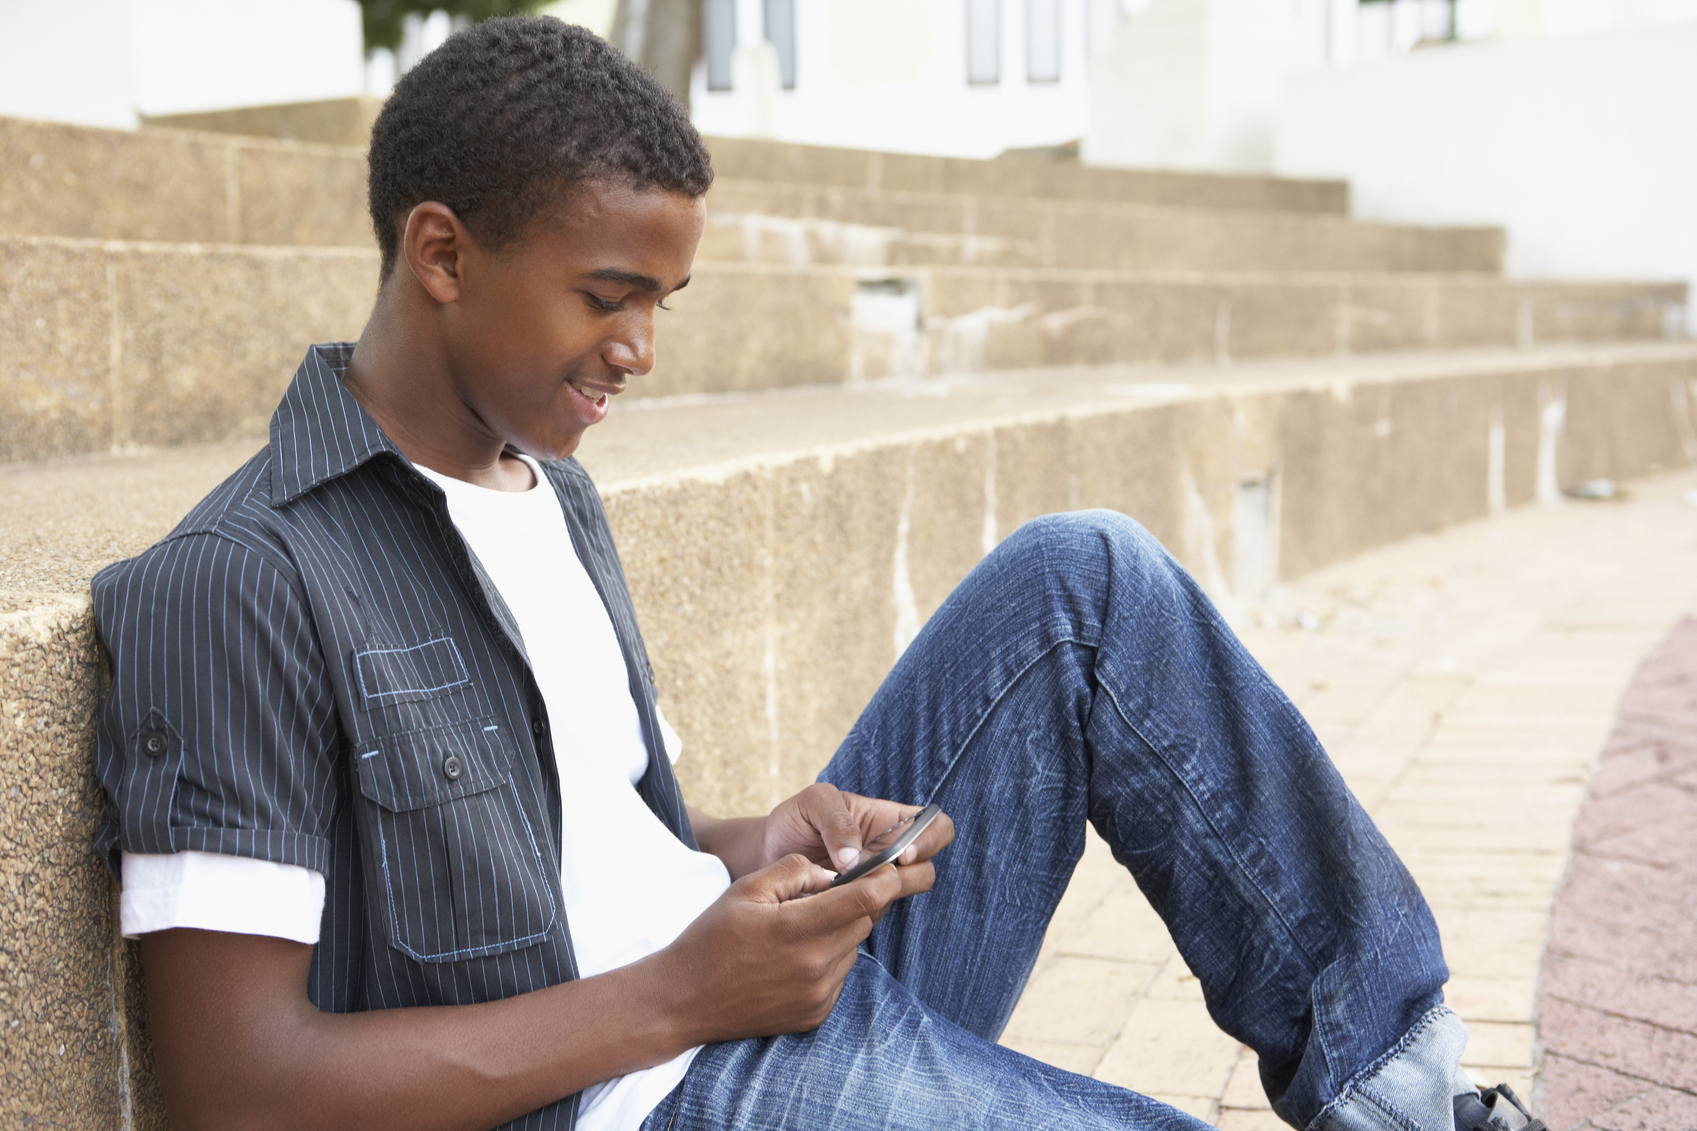 teen on cell phone using social media